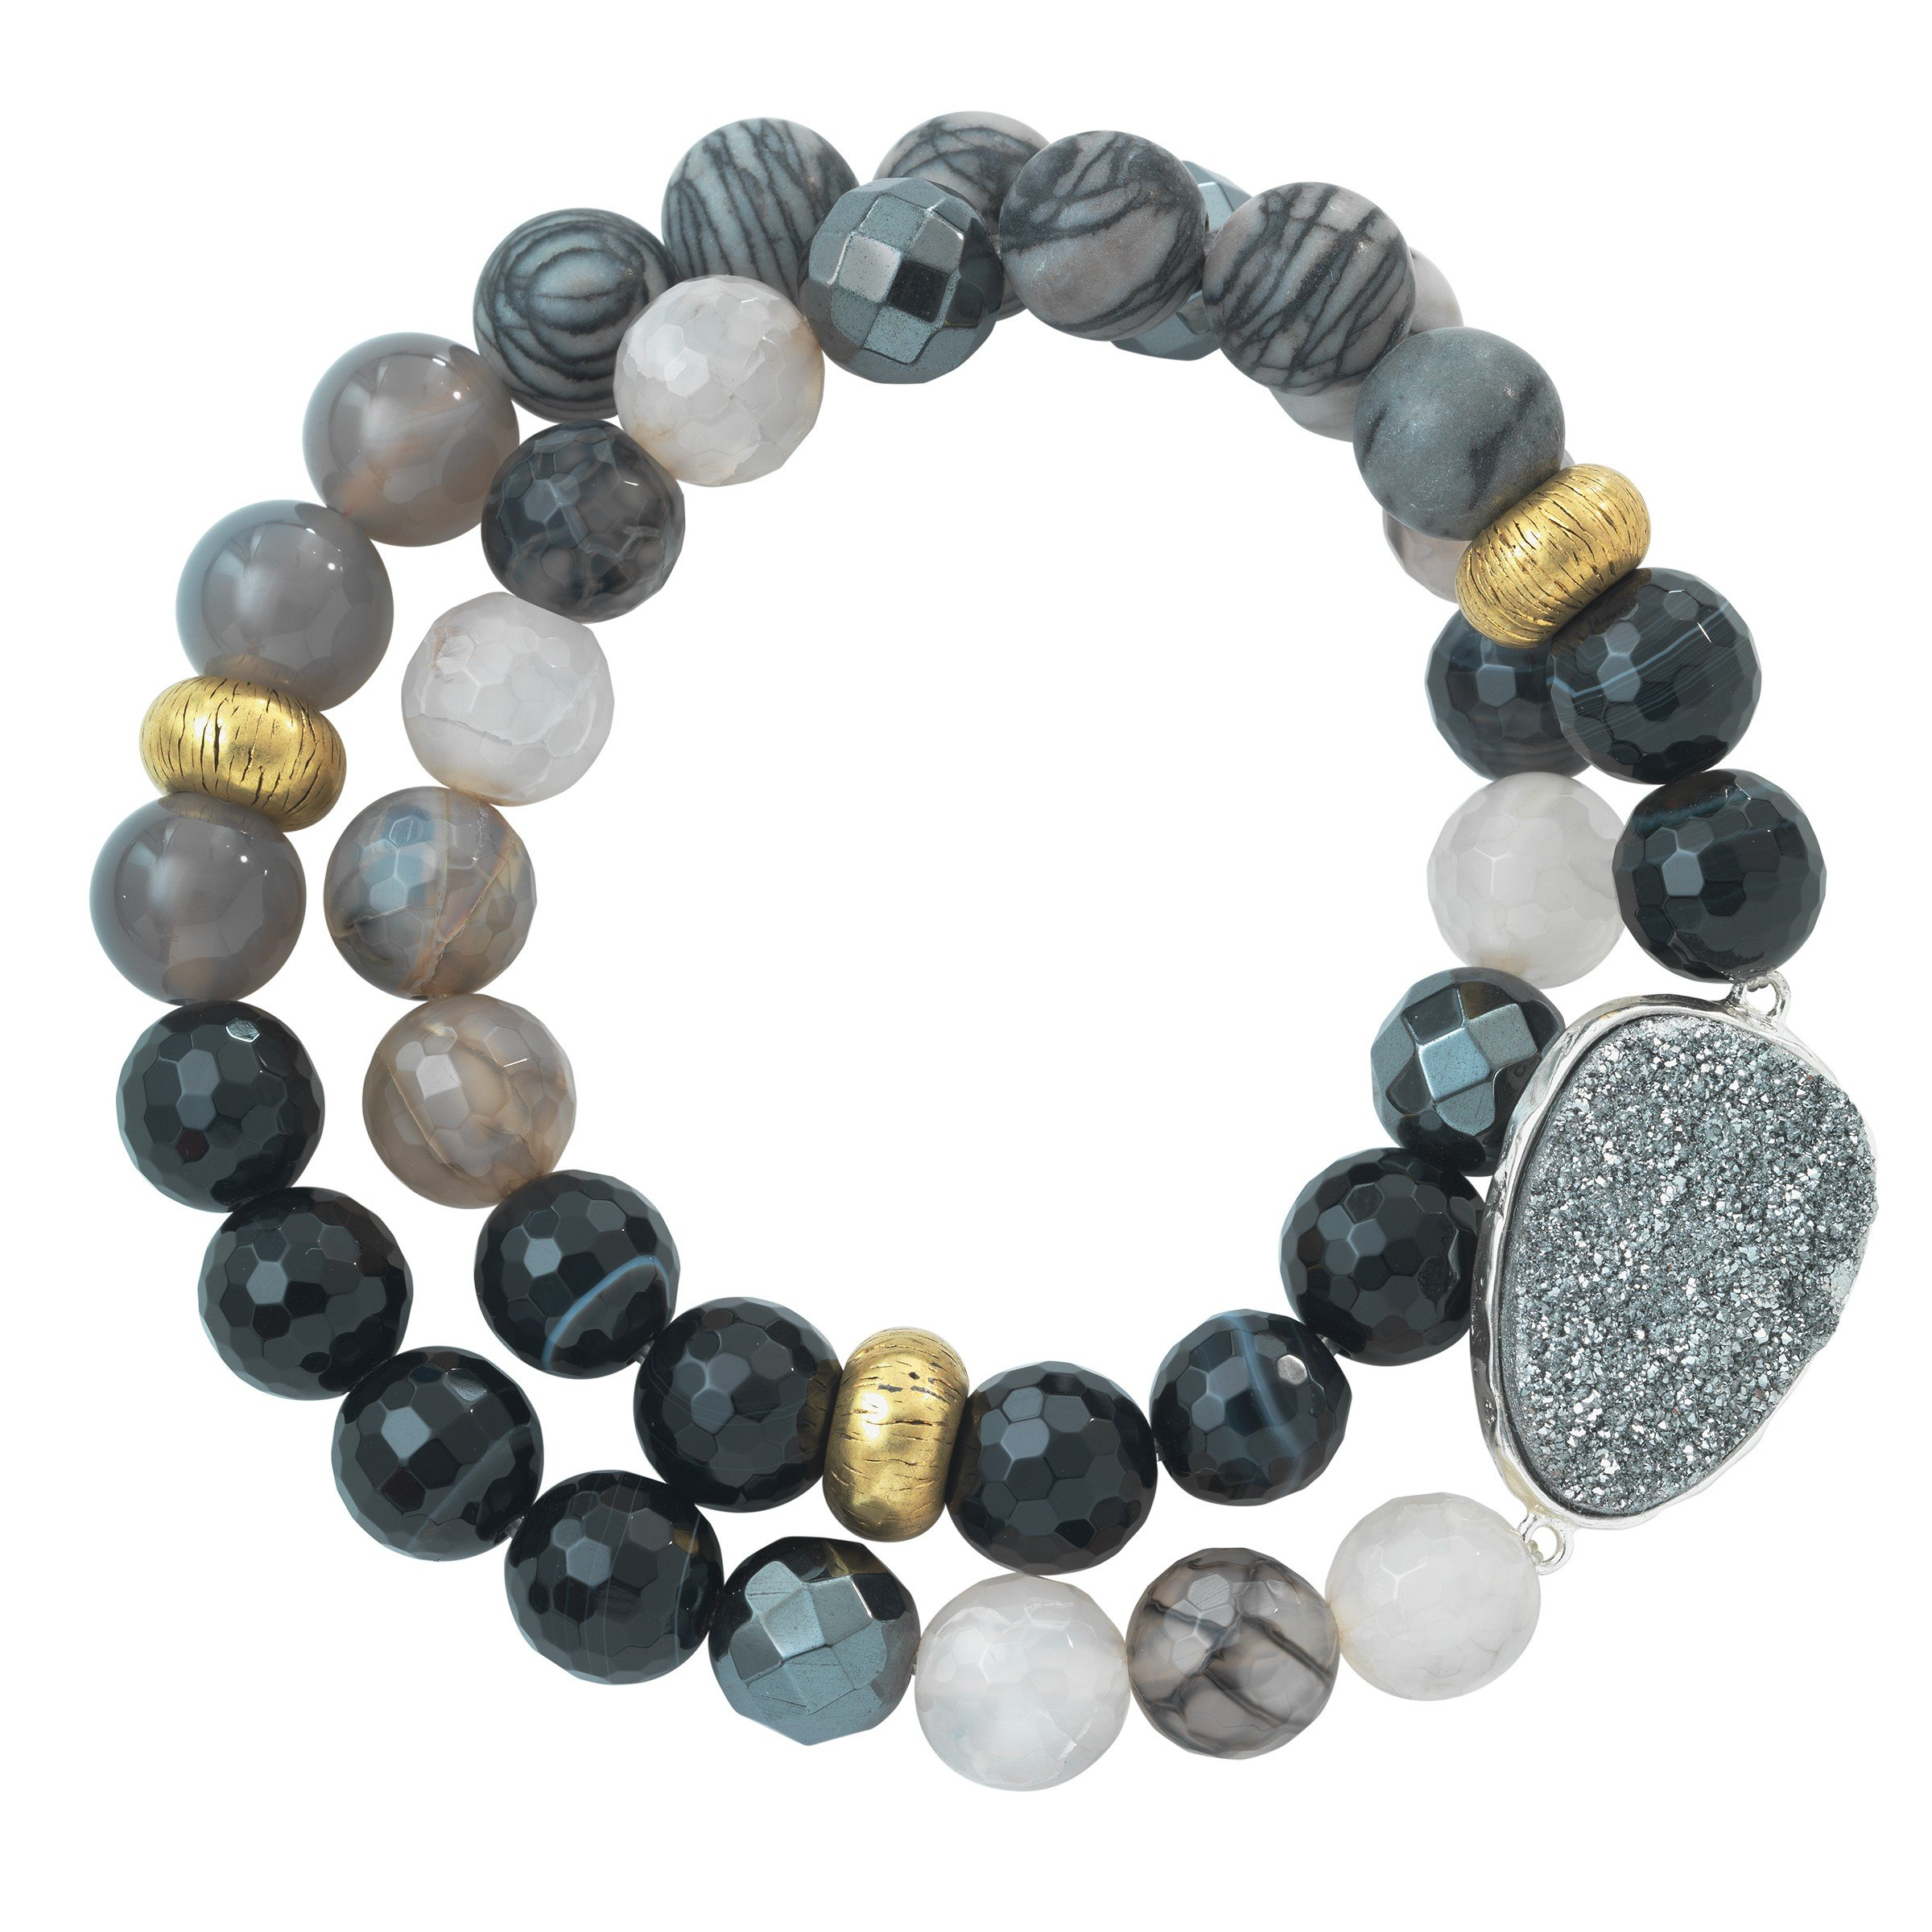 Silpada 'Ode To Geode' Natural Agate, Hematite, and Druzy Stretch Bracelet in Sterling Silver and Brass, 6.75''